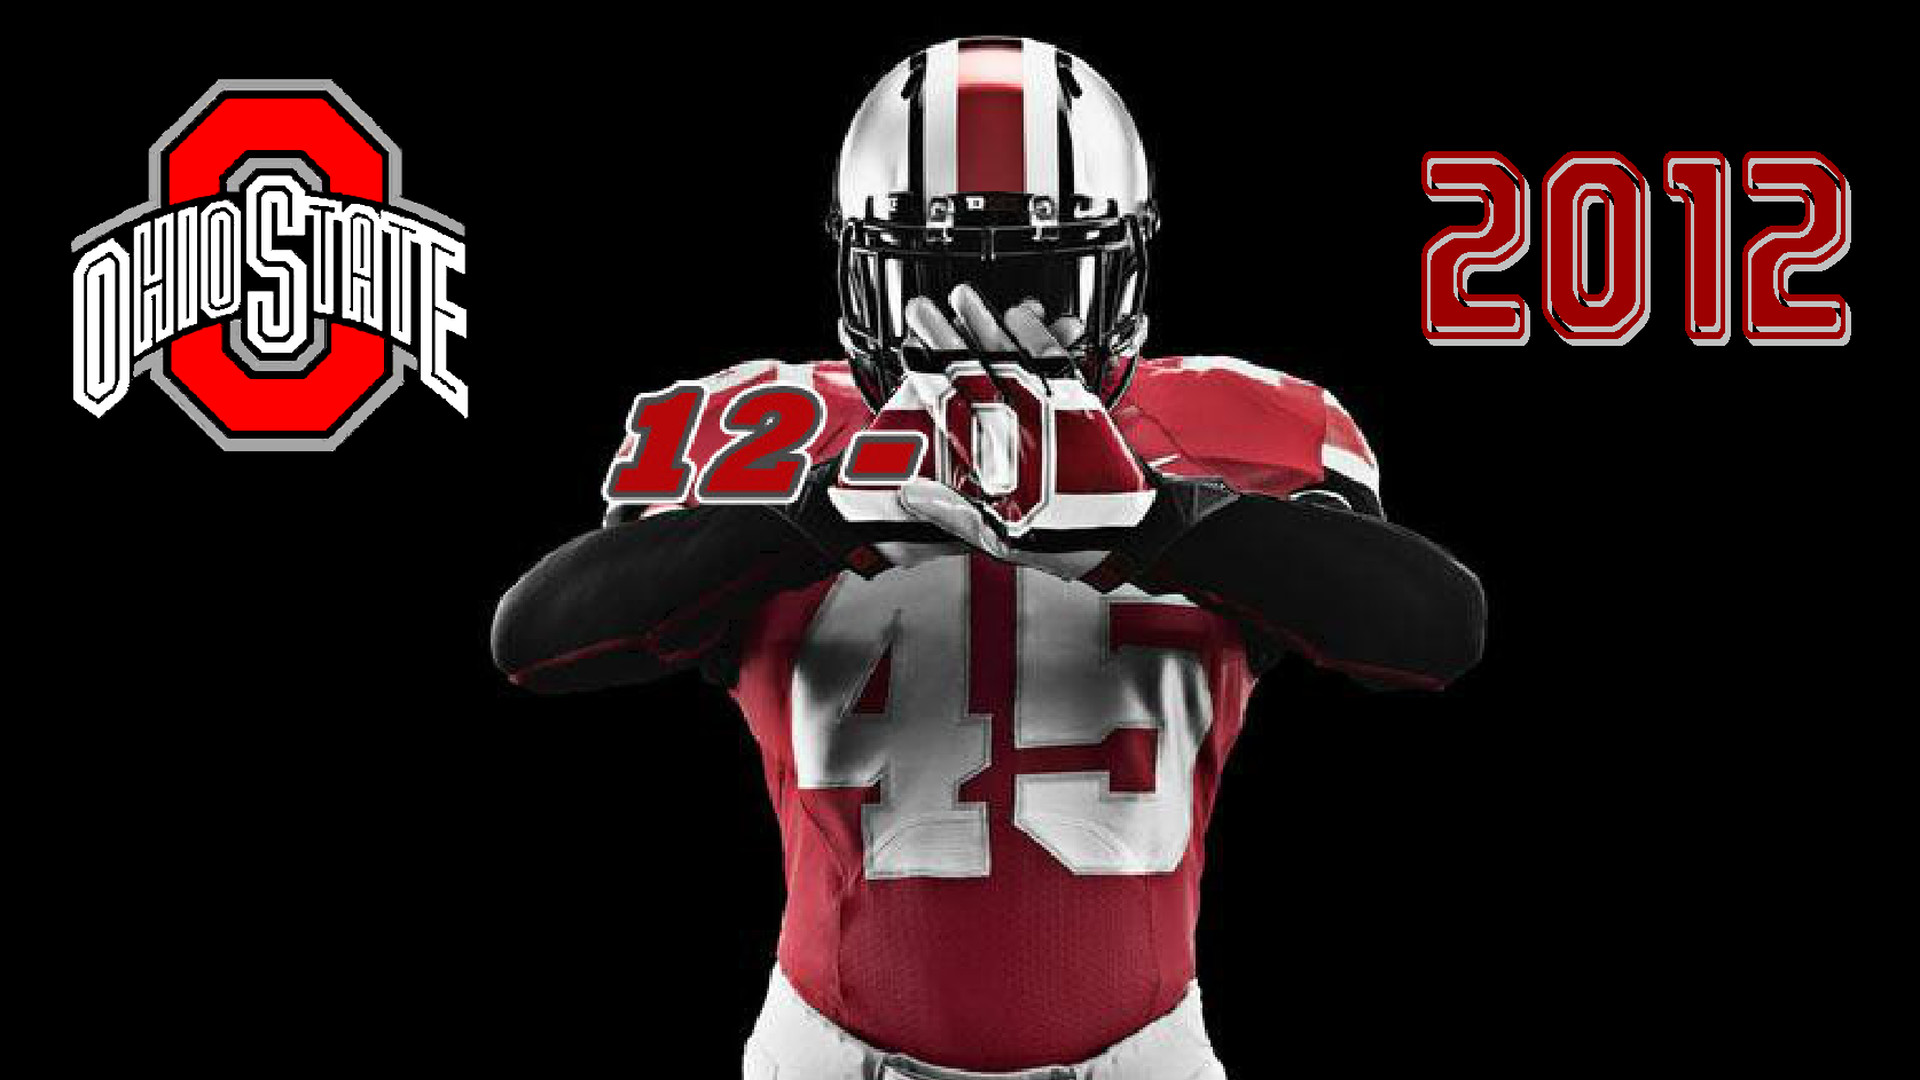 Ohio State Buckeyes Football Wallpapers – Wallpaper Cave